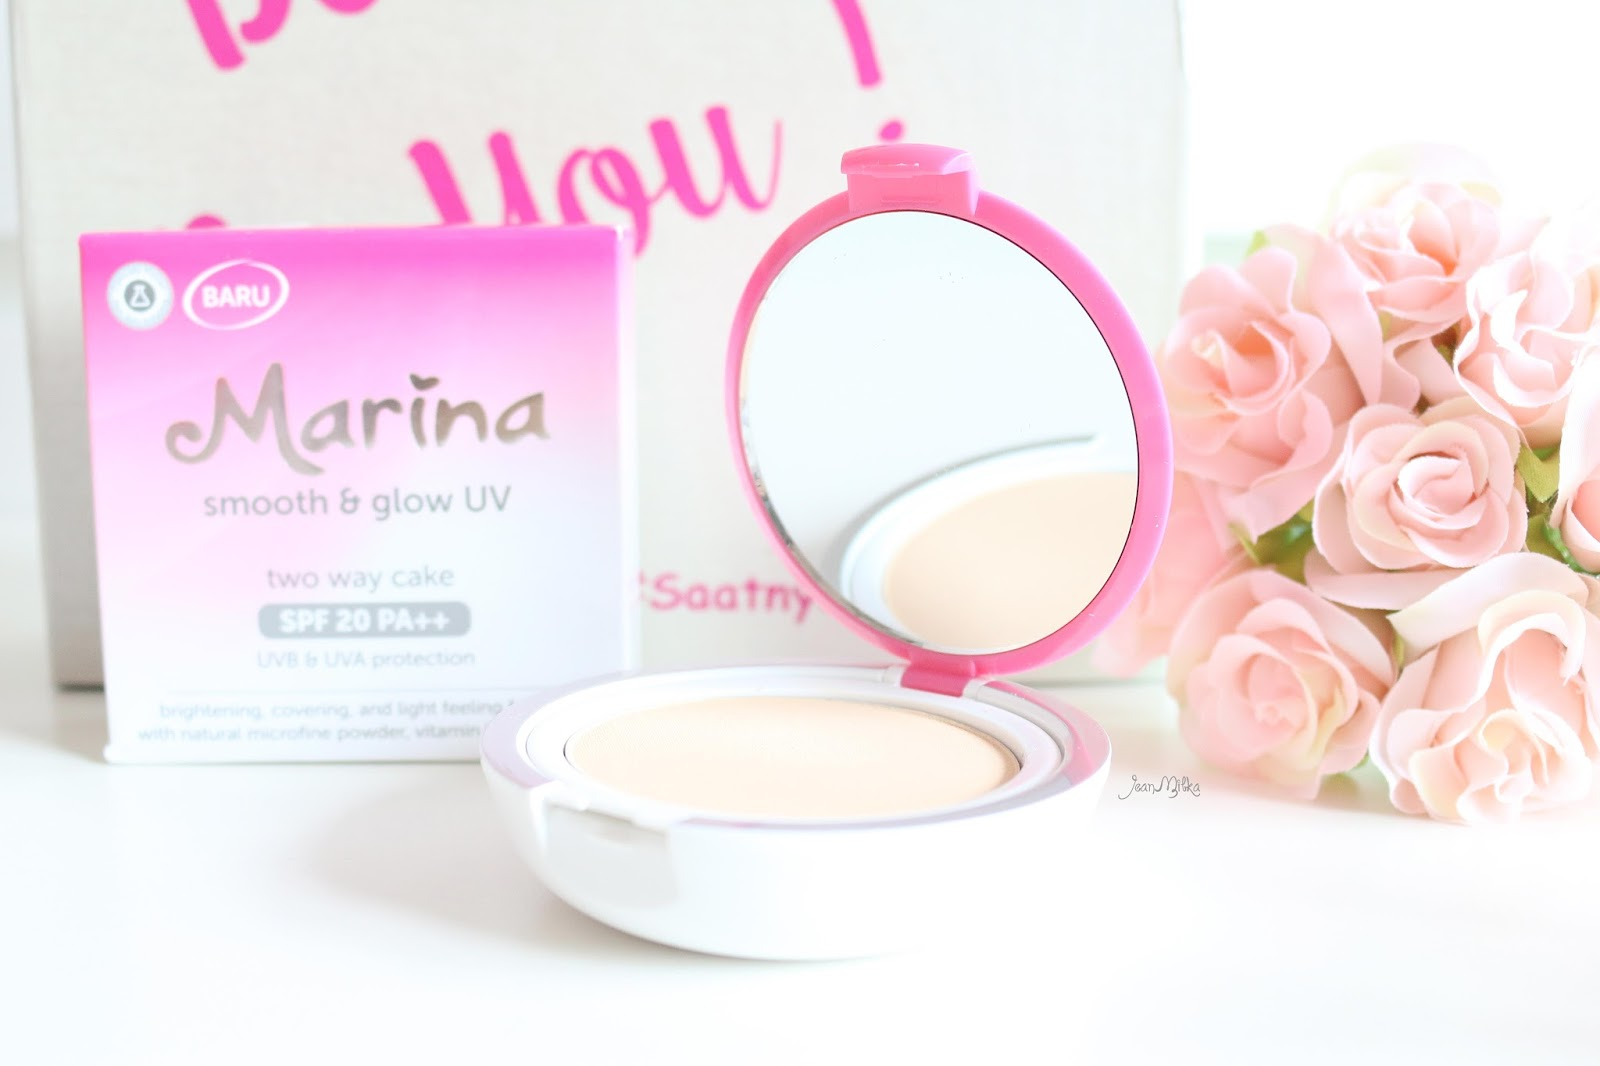 review, marina, marina smooth and glow, bb cream, two way cake, powdery foundation, compact powder, drugstore, makeup, makeup murah, smooth and glow uv, saatnya bersinar, marina two way cake